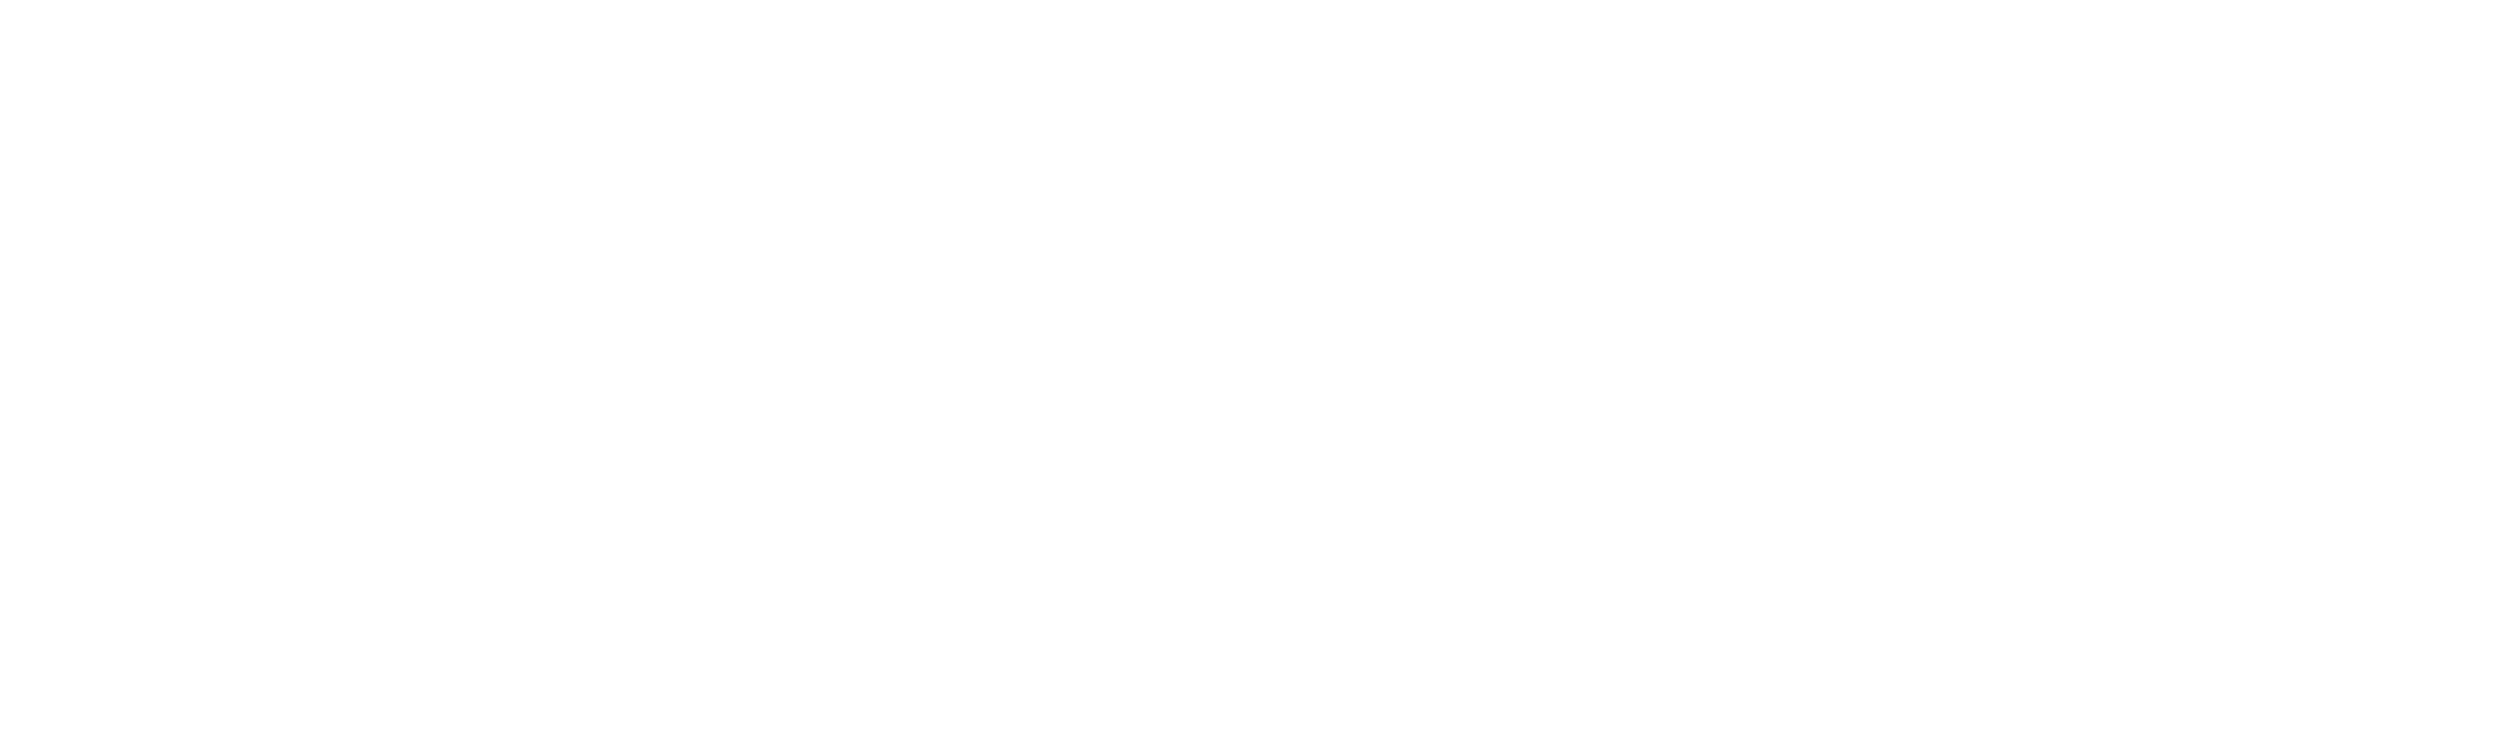 E240881 The Brokerage - Logos_WHITE x2kinds_2.png